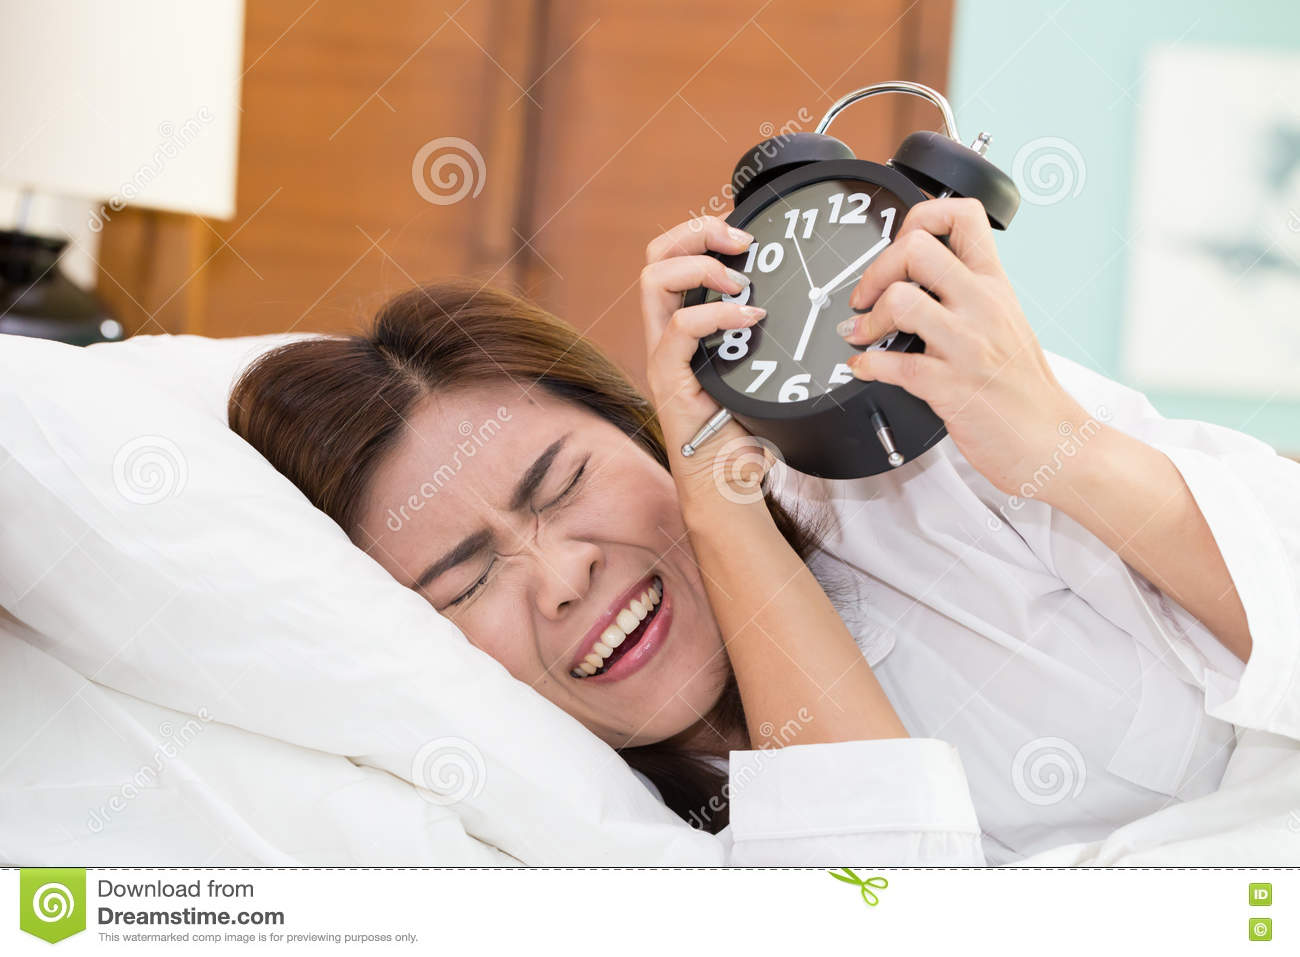 Asian Woman Lying In Bed Suffering From Alarm Clock Sound Not E Stock Photo - Image -3490